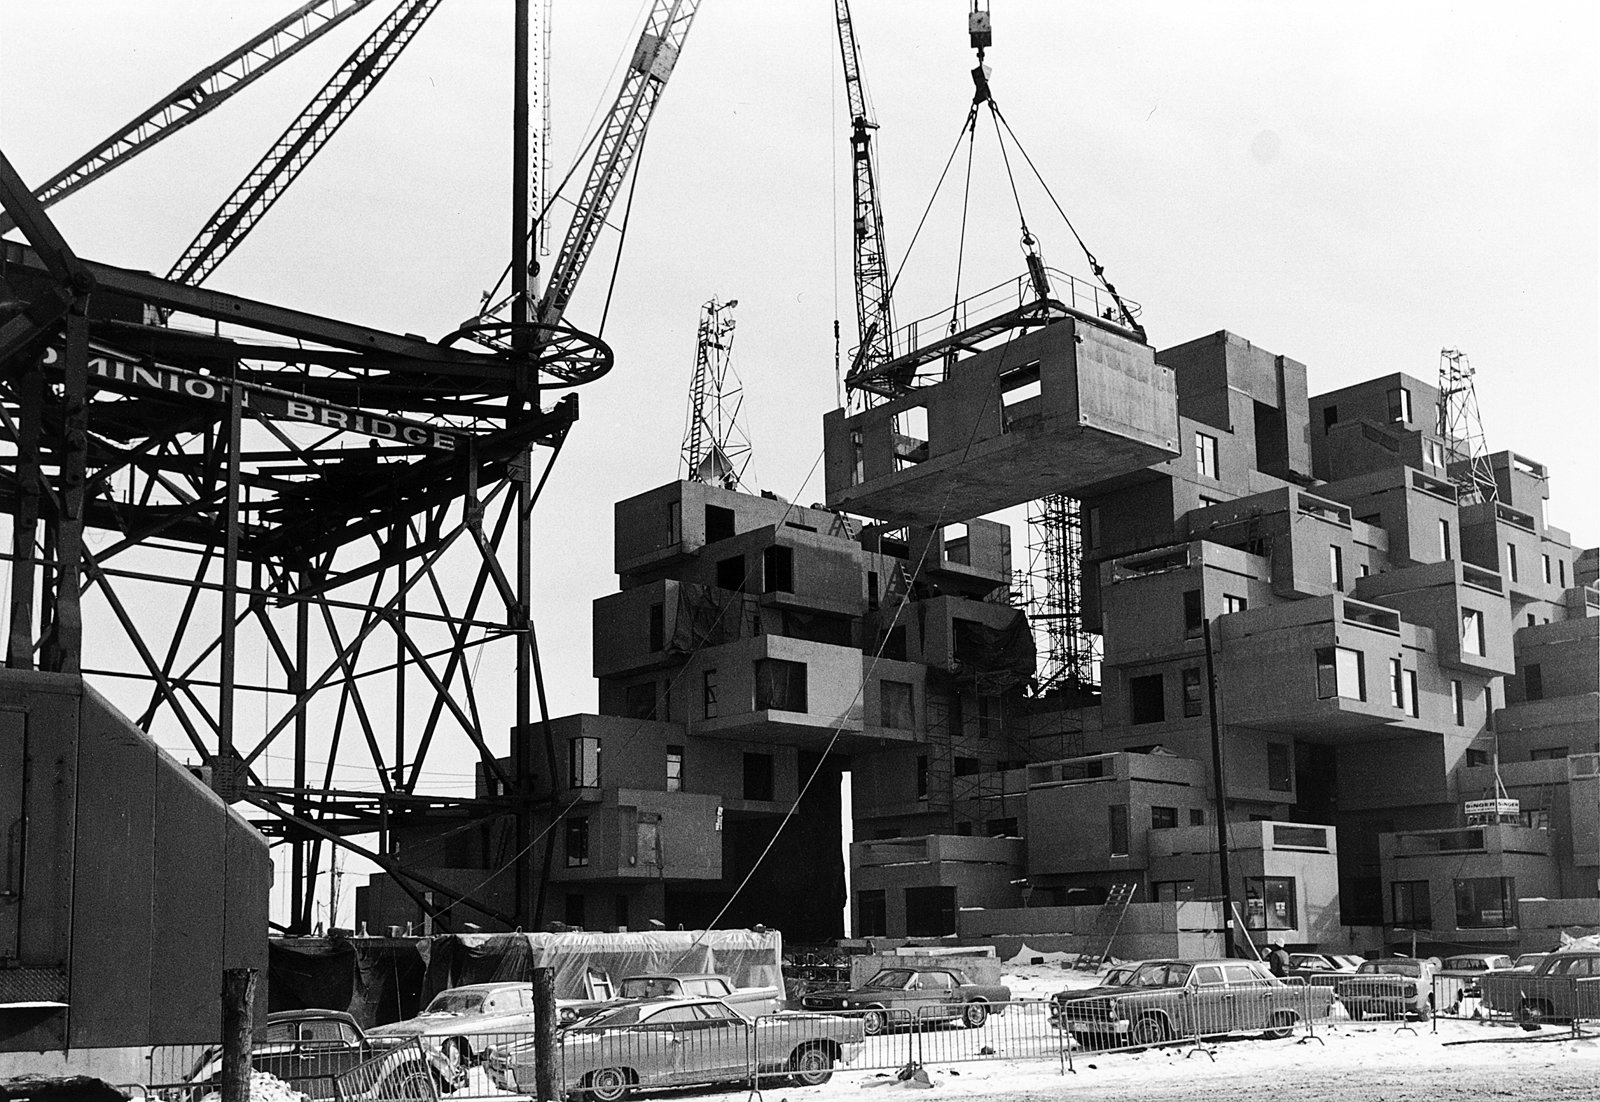 Construction took place from 1964 to 1967. The original project was adapted from Safdie's graduate thesis at Montreal's McGill University.  Photo 2 of 6 in A Look Back at Habitat '67 with Moshe Safdie